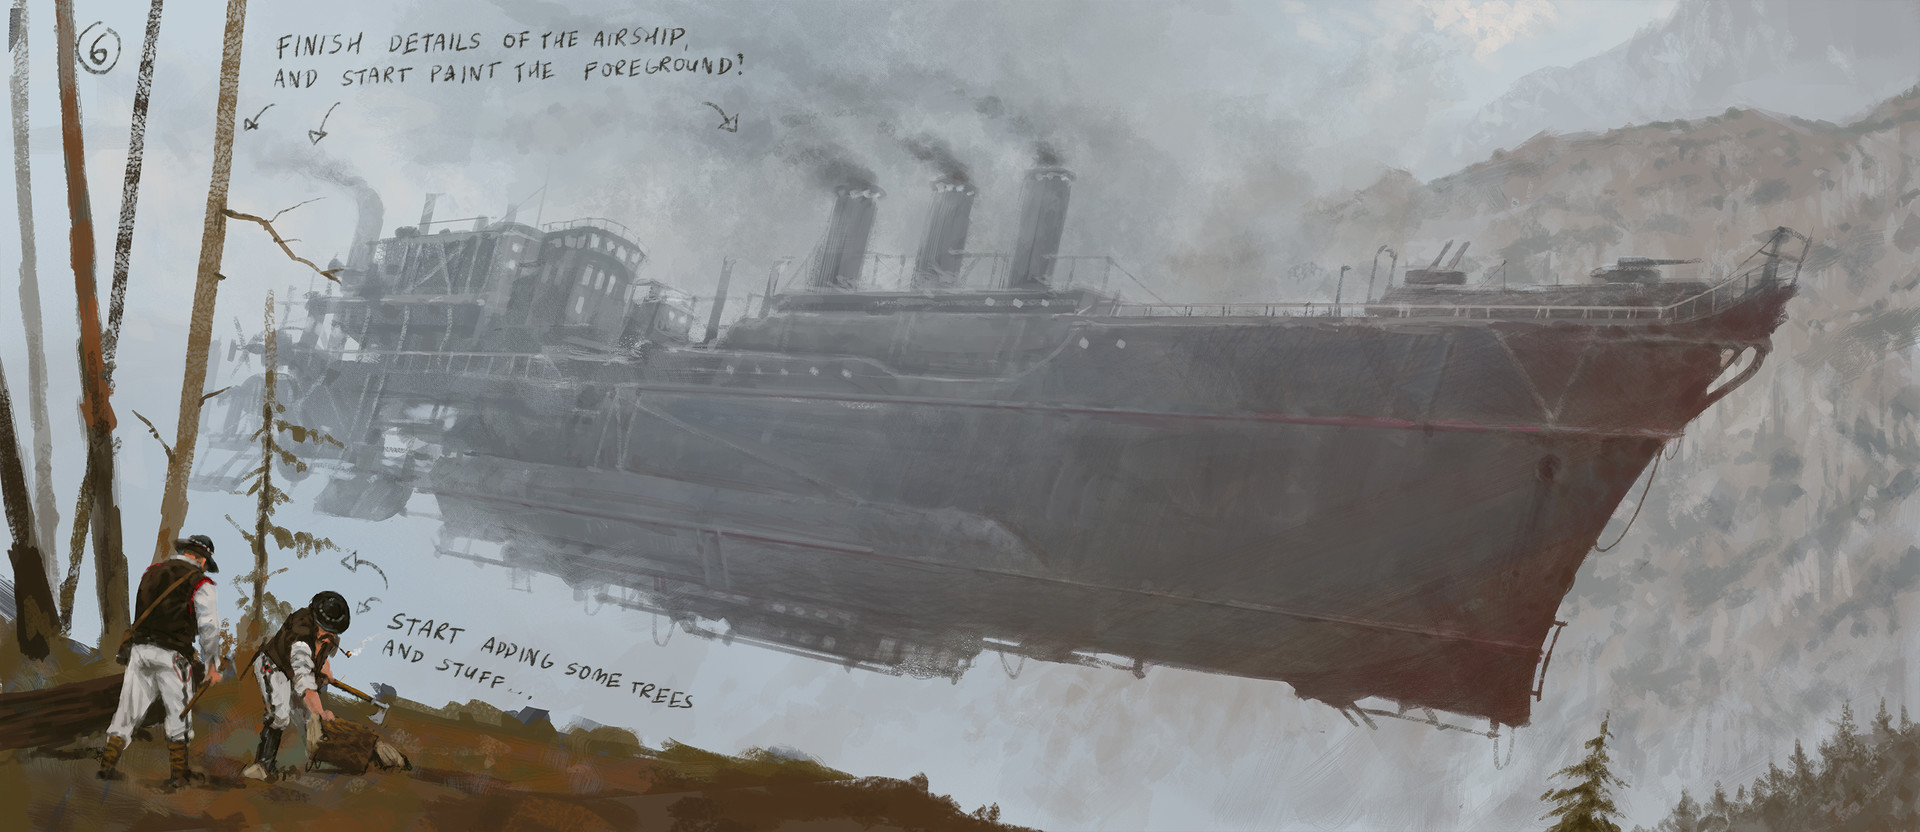 Jakub rozalski airship expansion cover art process5